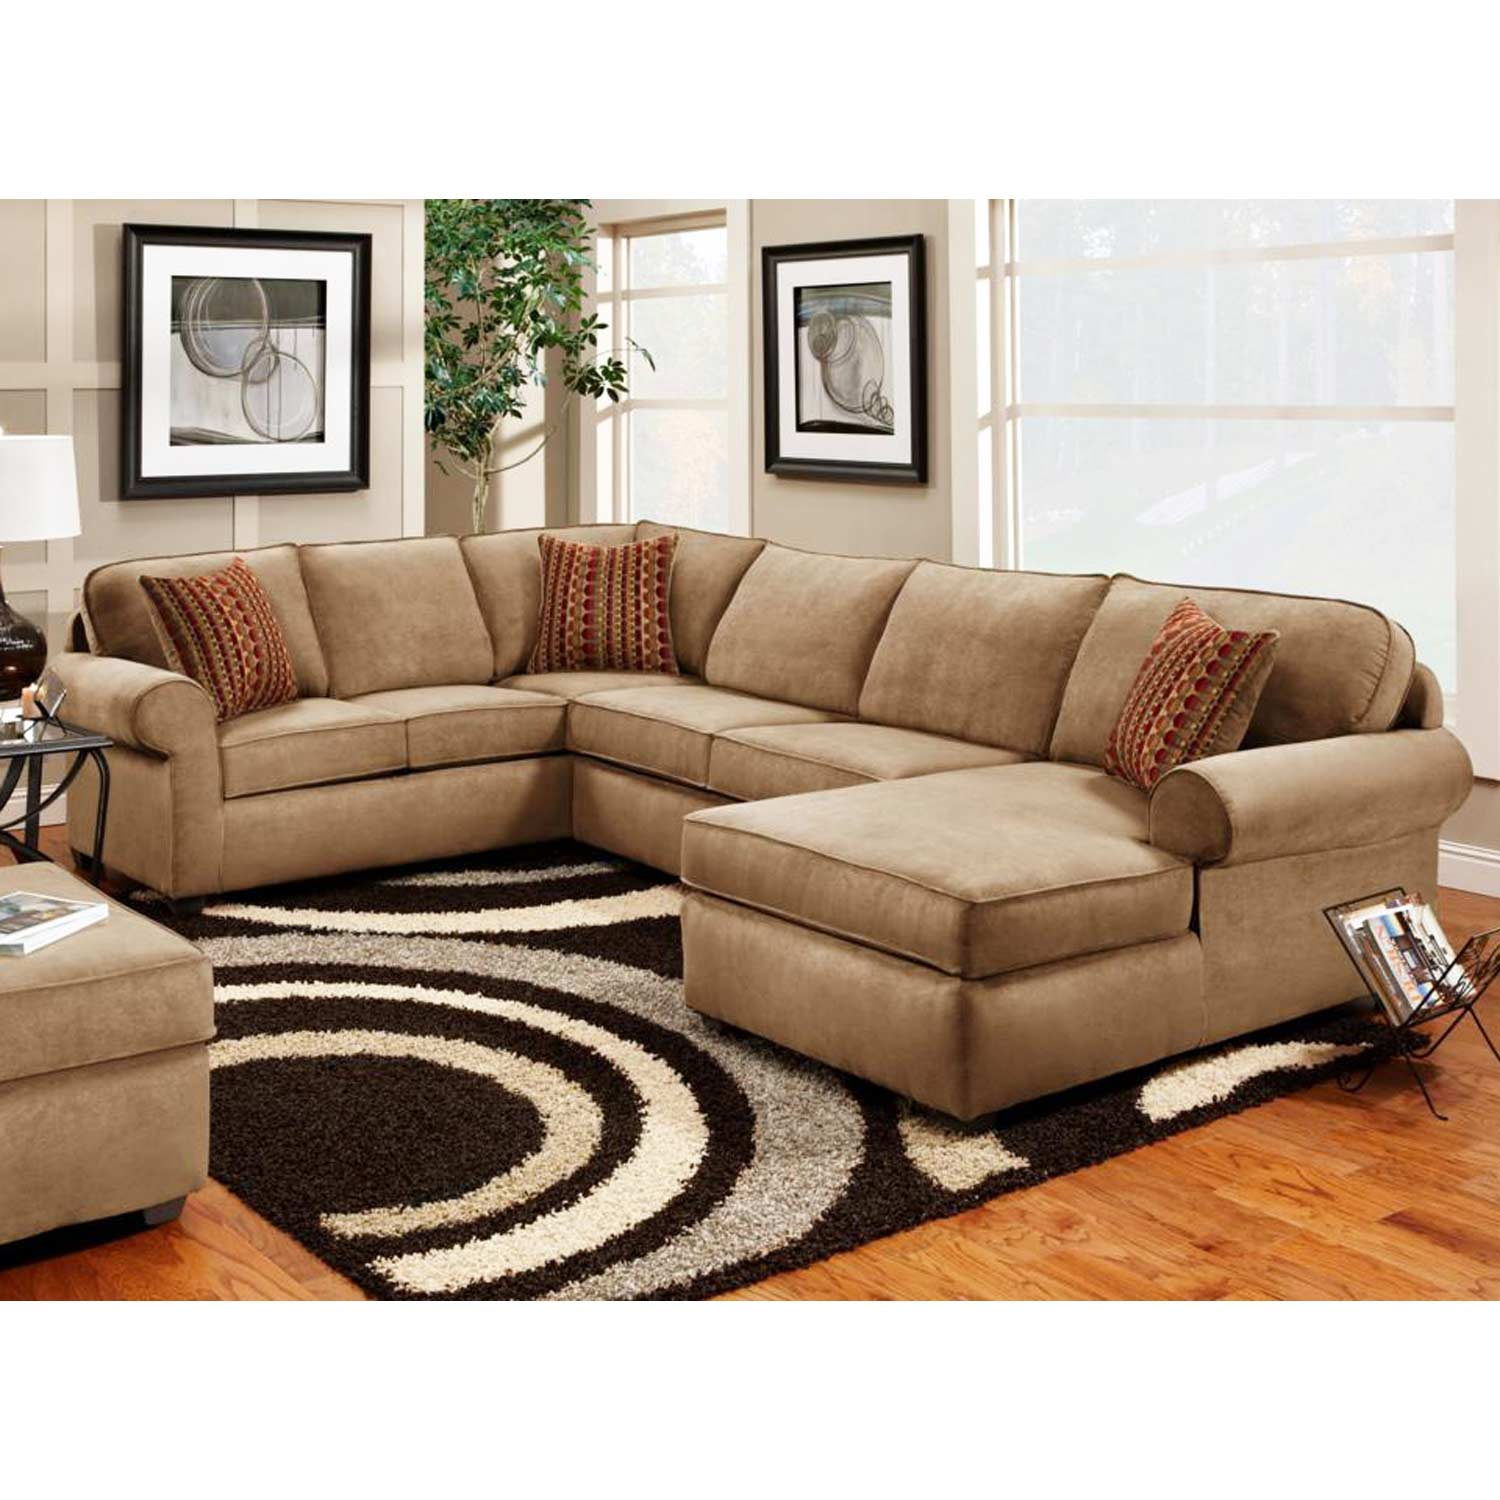 Vera 3-Piece Chaise Sectional - Victory Lane Taupe Fabric